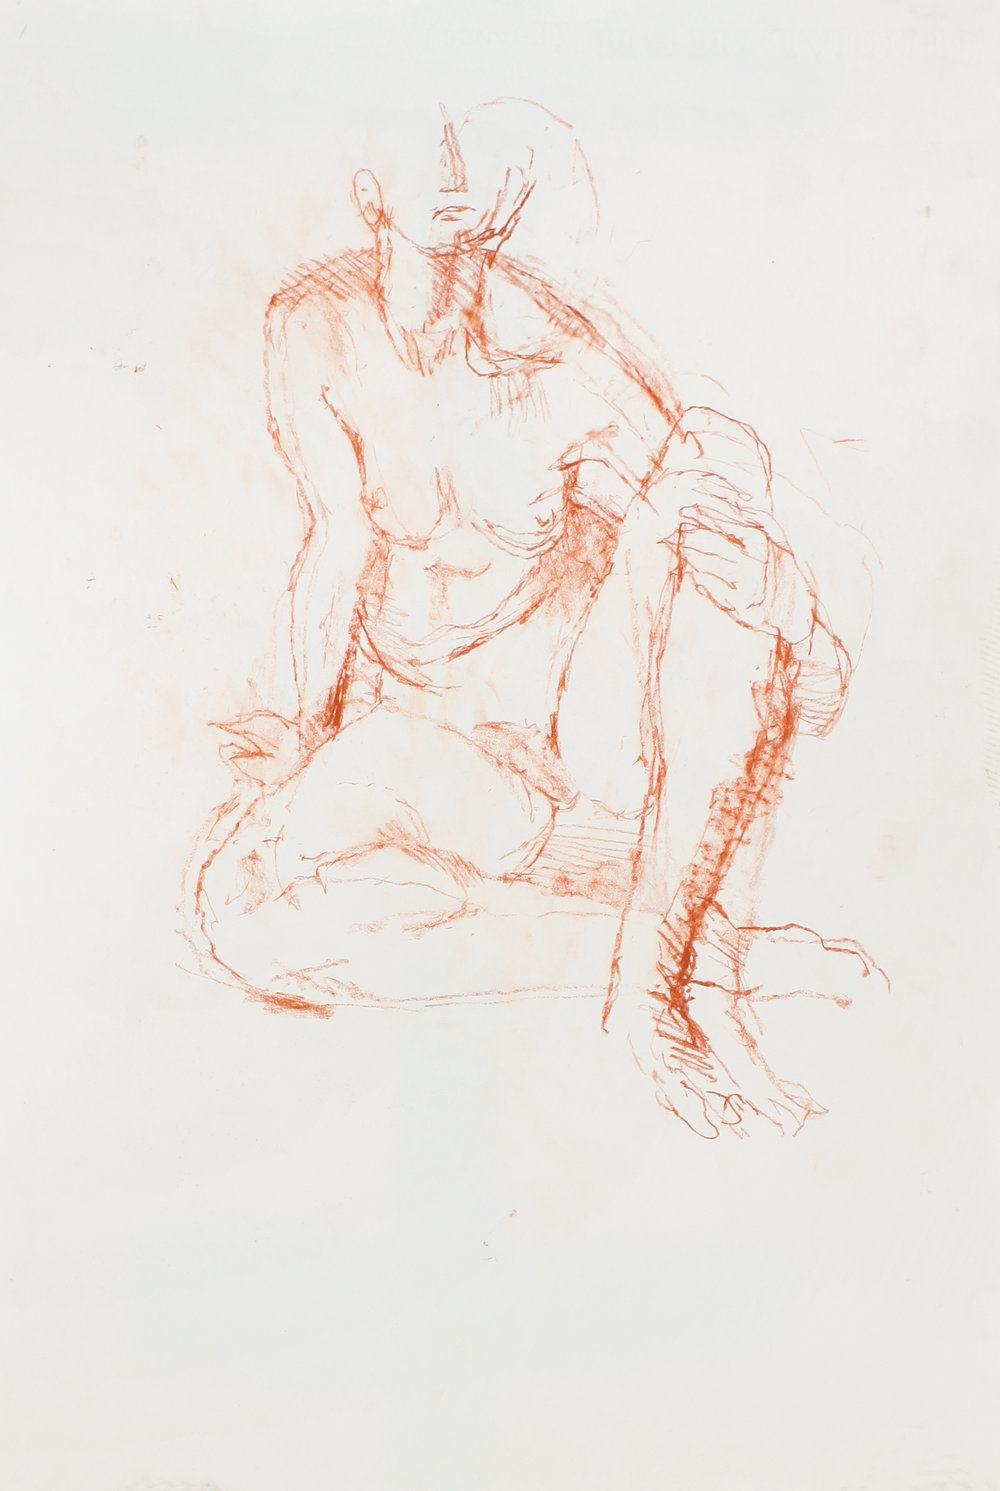 1980s_Seated_Nude_with_Crossed_Legs_and_Hand_on_Knee_red_conte_on_paper_WPF476.jpg